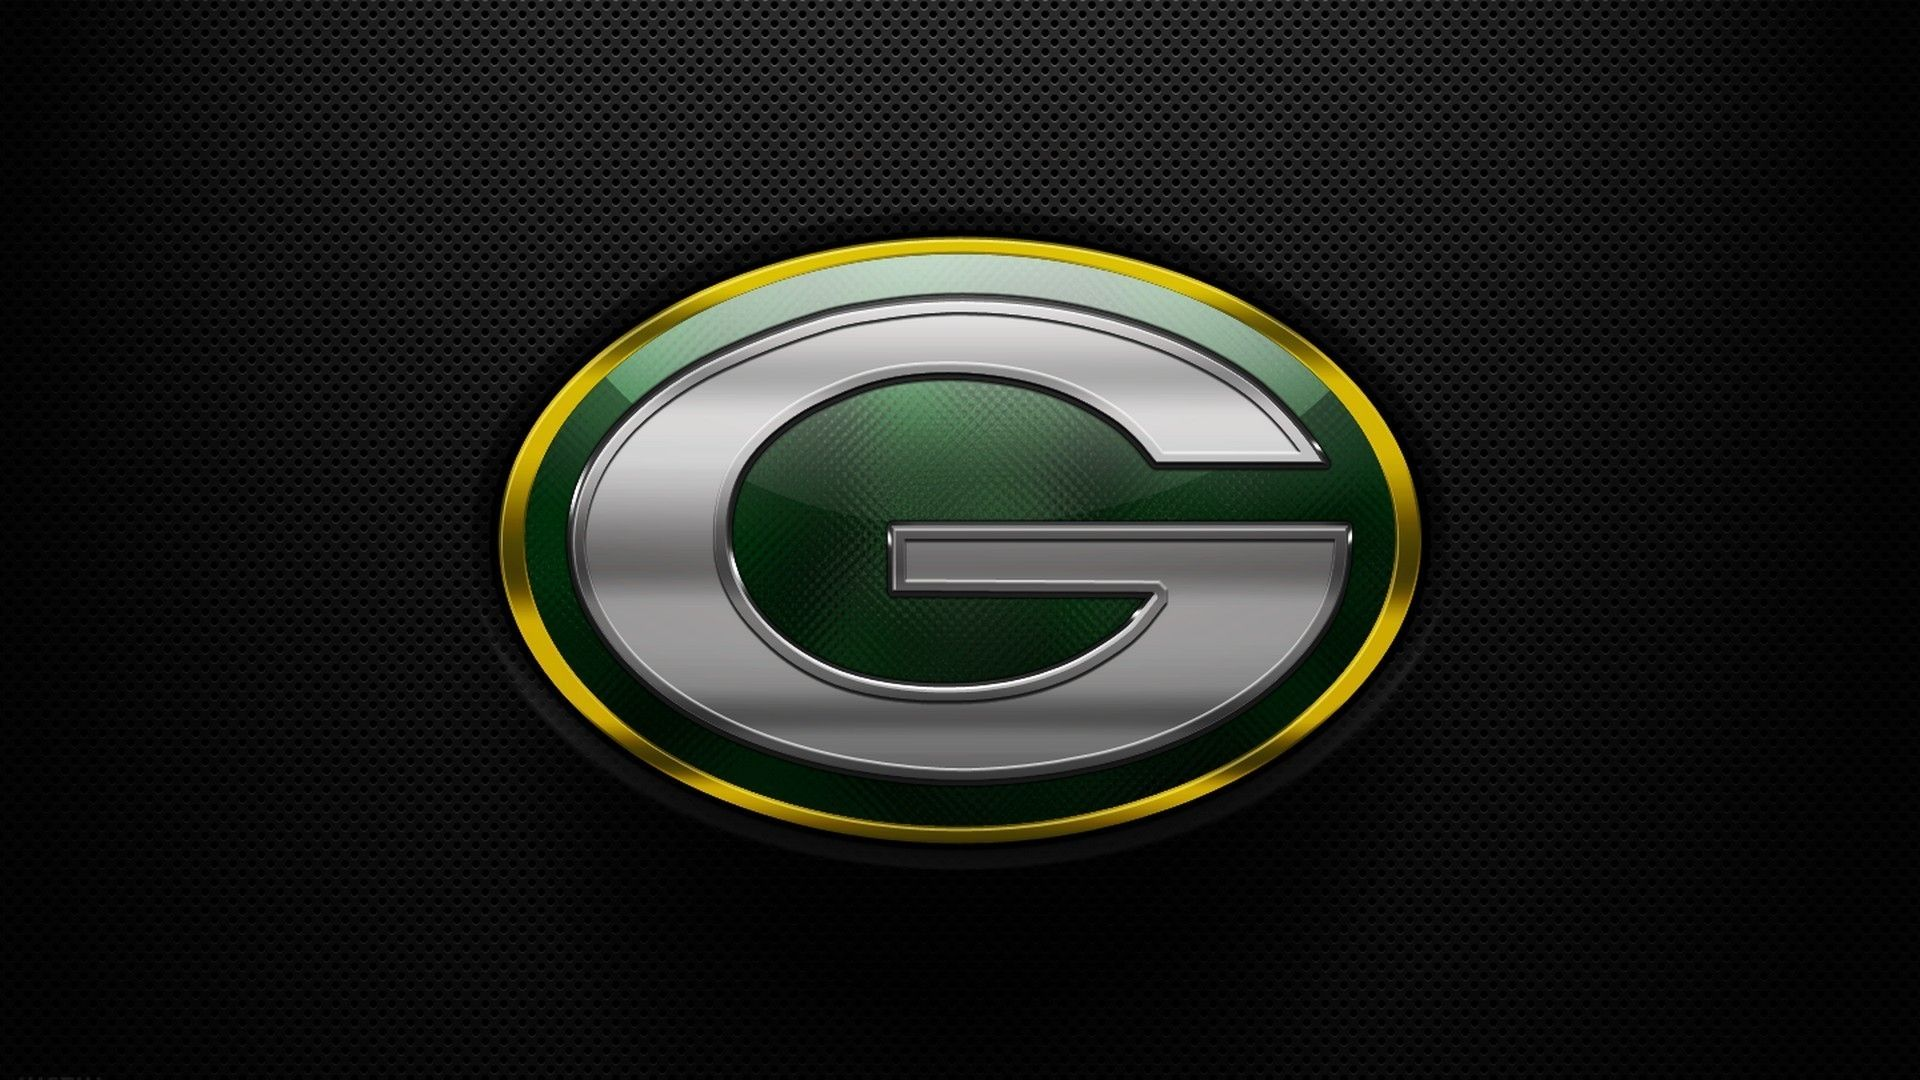 Nfl Wallpapers Green Bay Packers Wallpaper Green Bay Packers Logo Green Bay